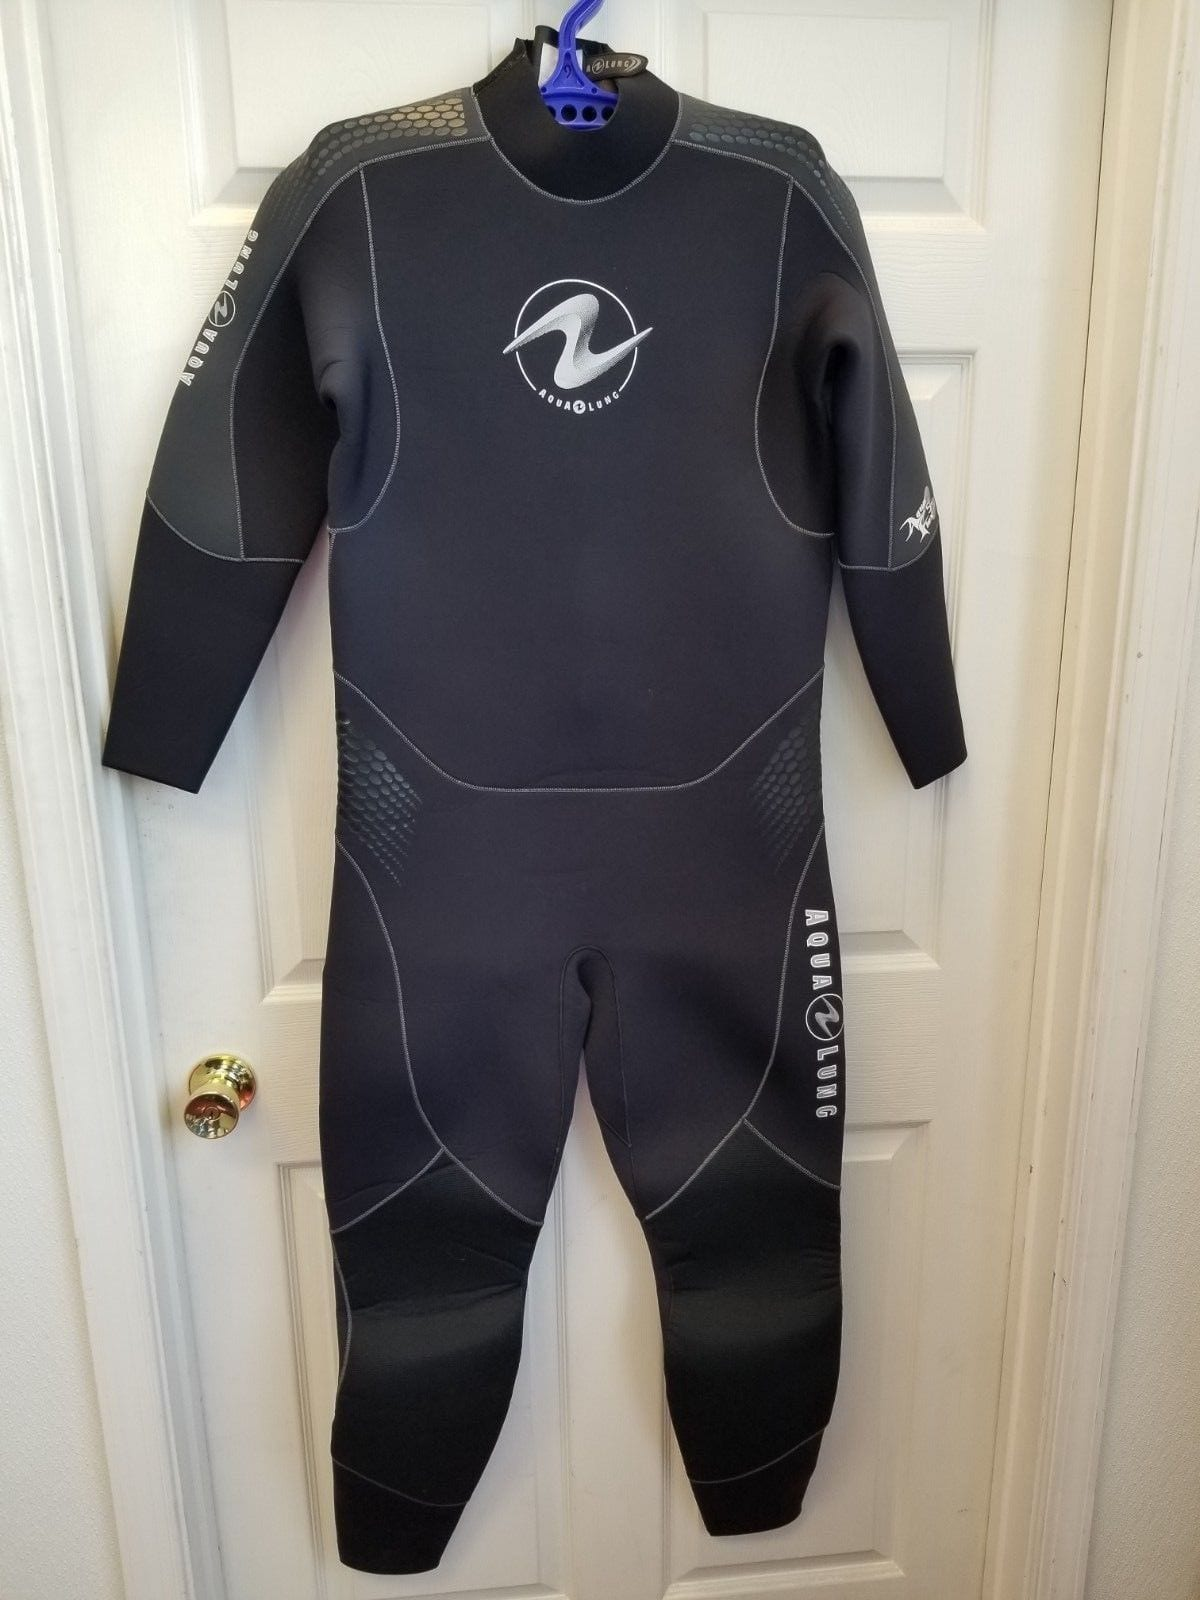 32daf423a72a New Aqua Lung AquaFlex 5mm Wetsuit Men's XXL Scuba Diving Snorkeling ...